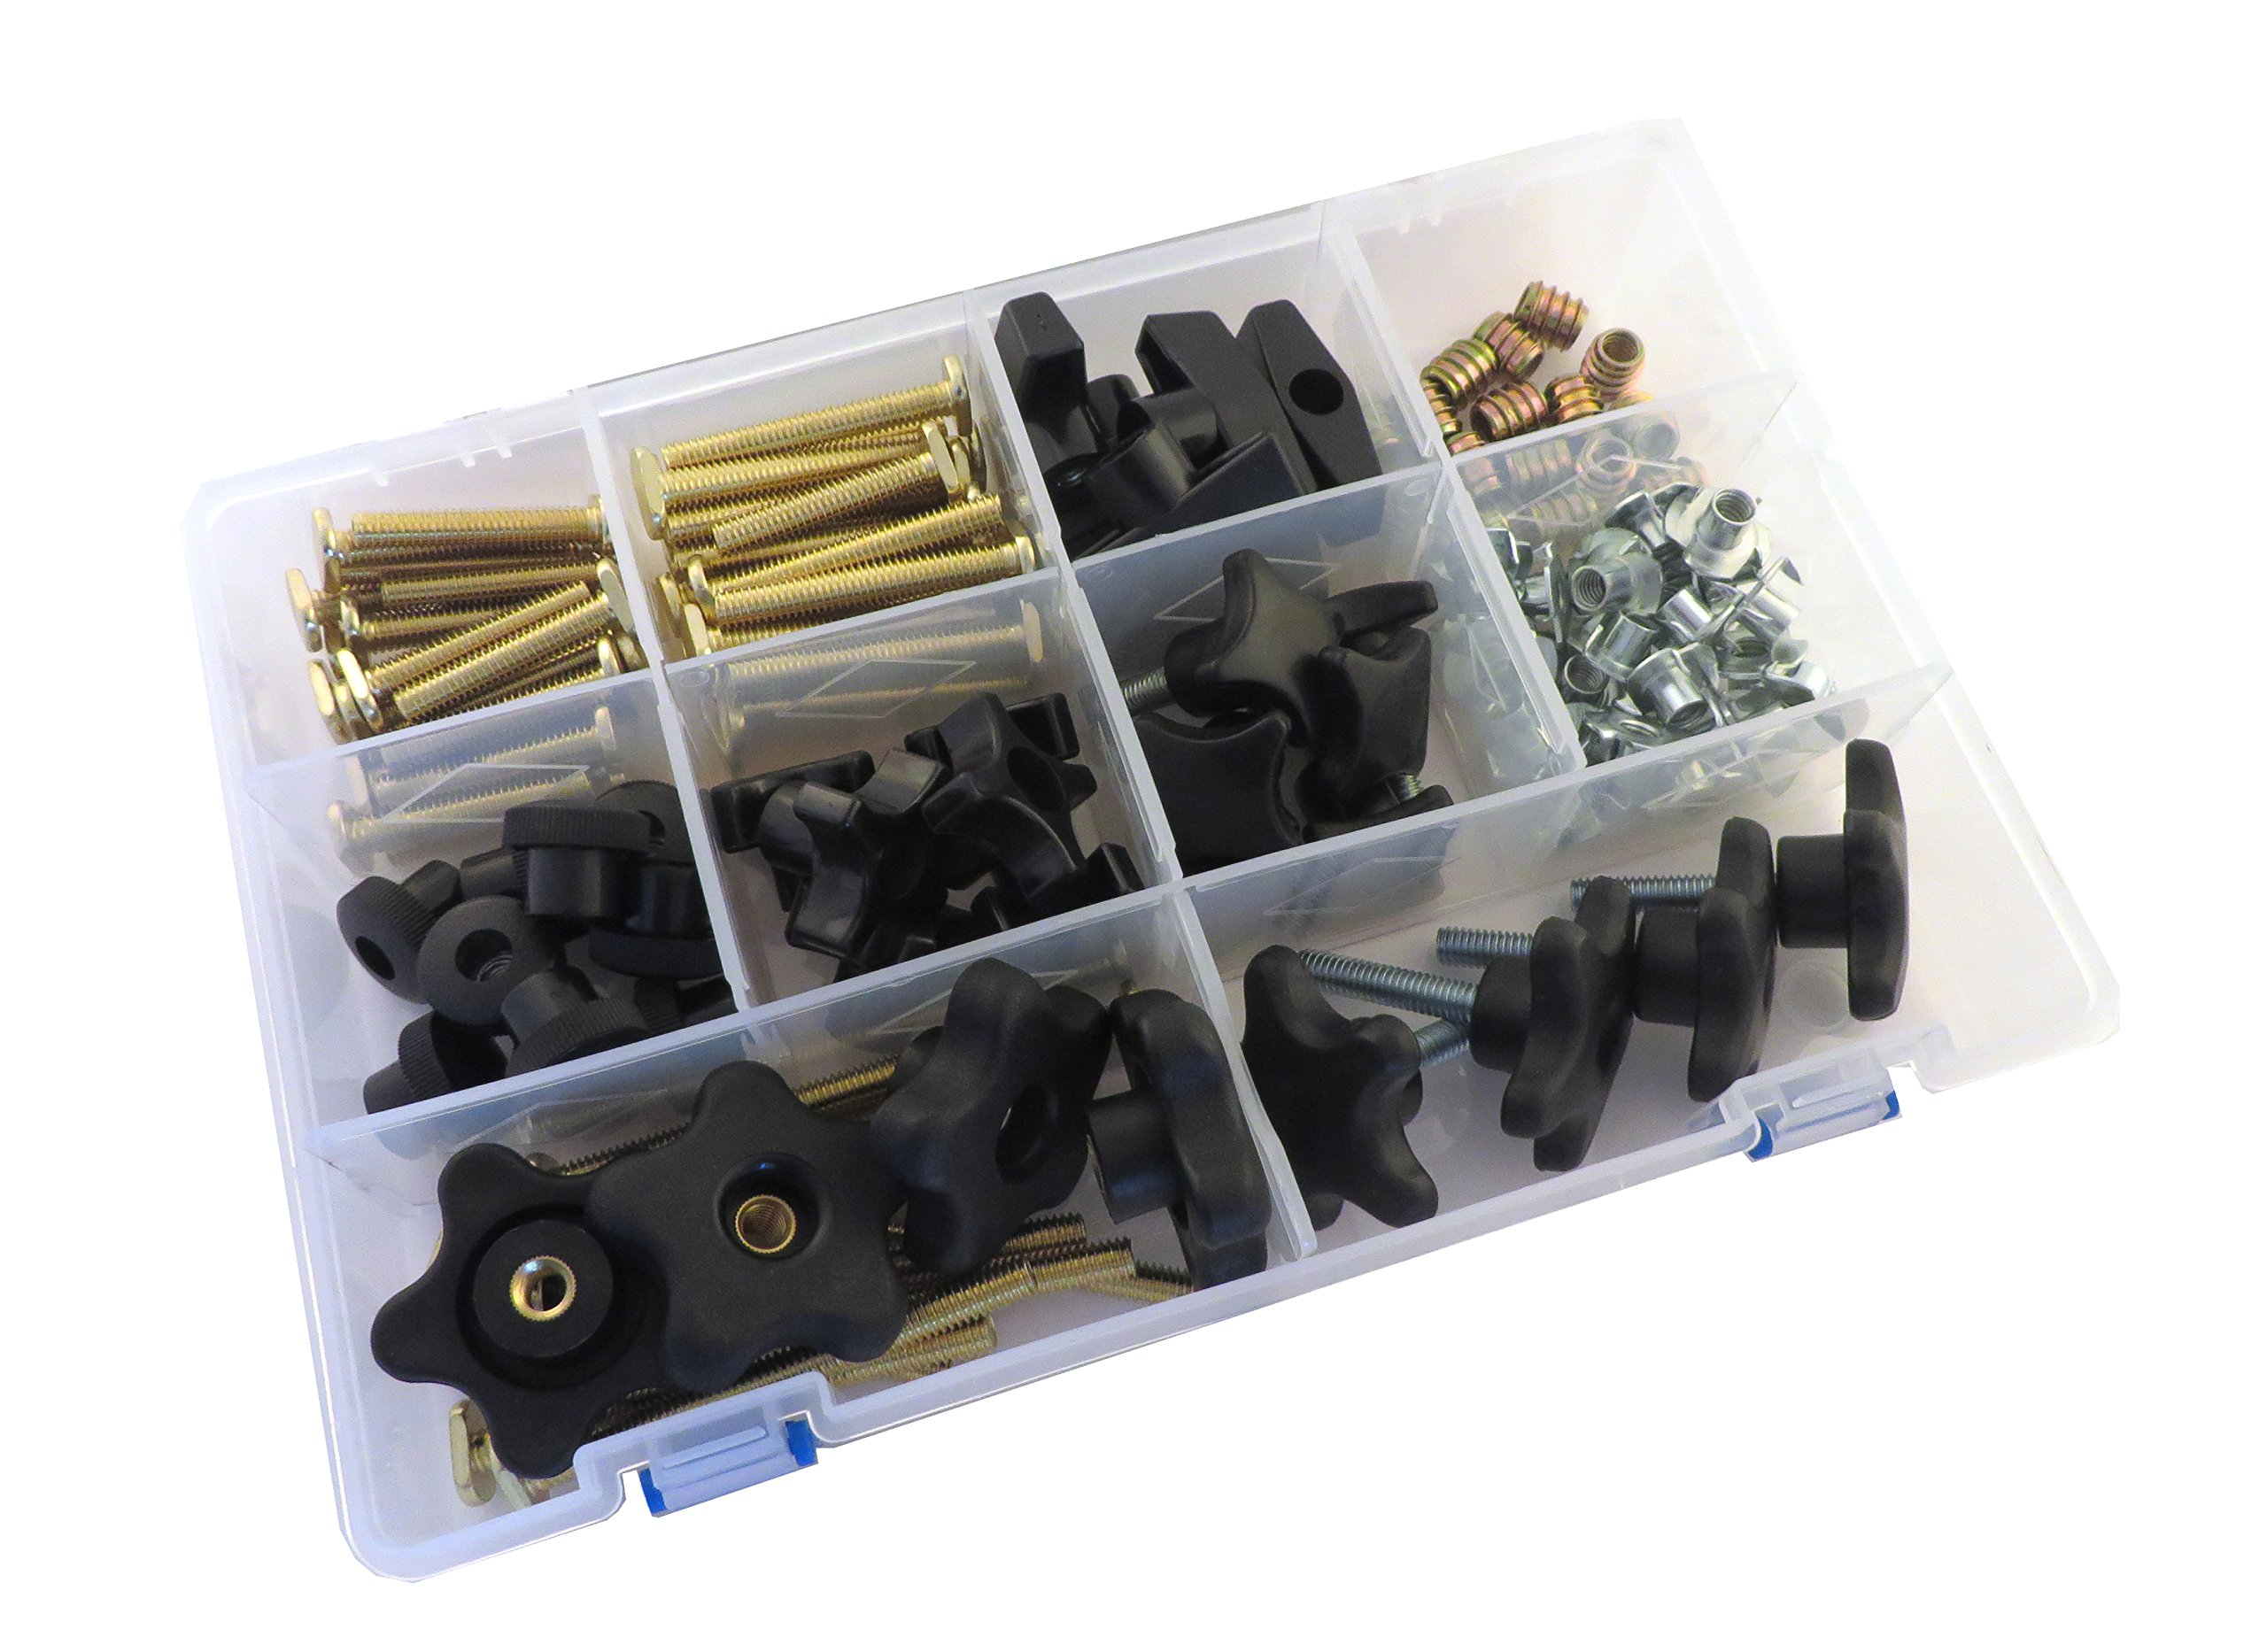 129 Piece Jig Fixture T Track Hardware Kit 1/4 20 Threads with Knobs, T Bolts, Threaded Inserts 129PJHK-1/4